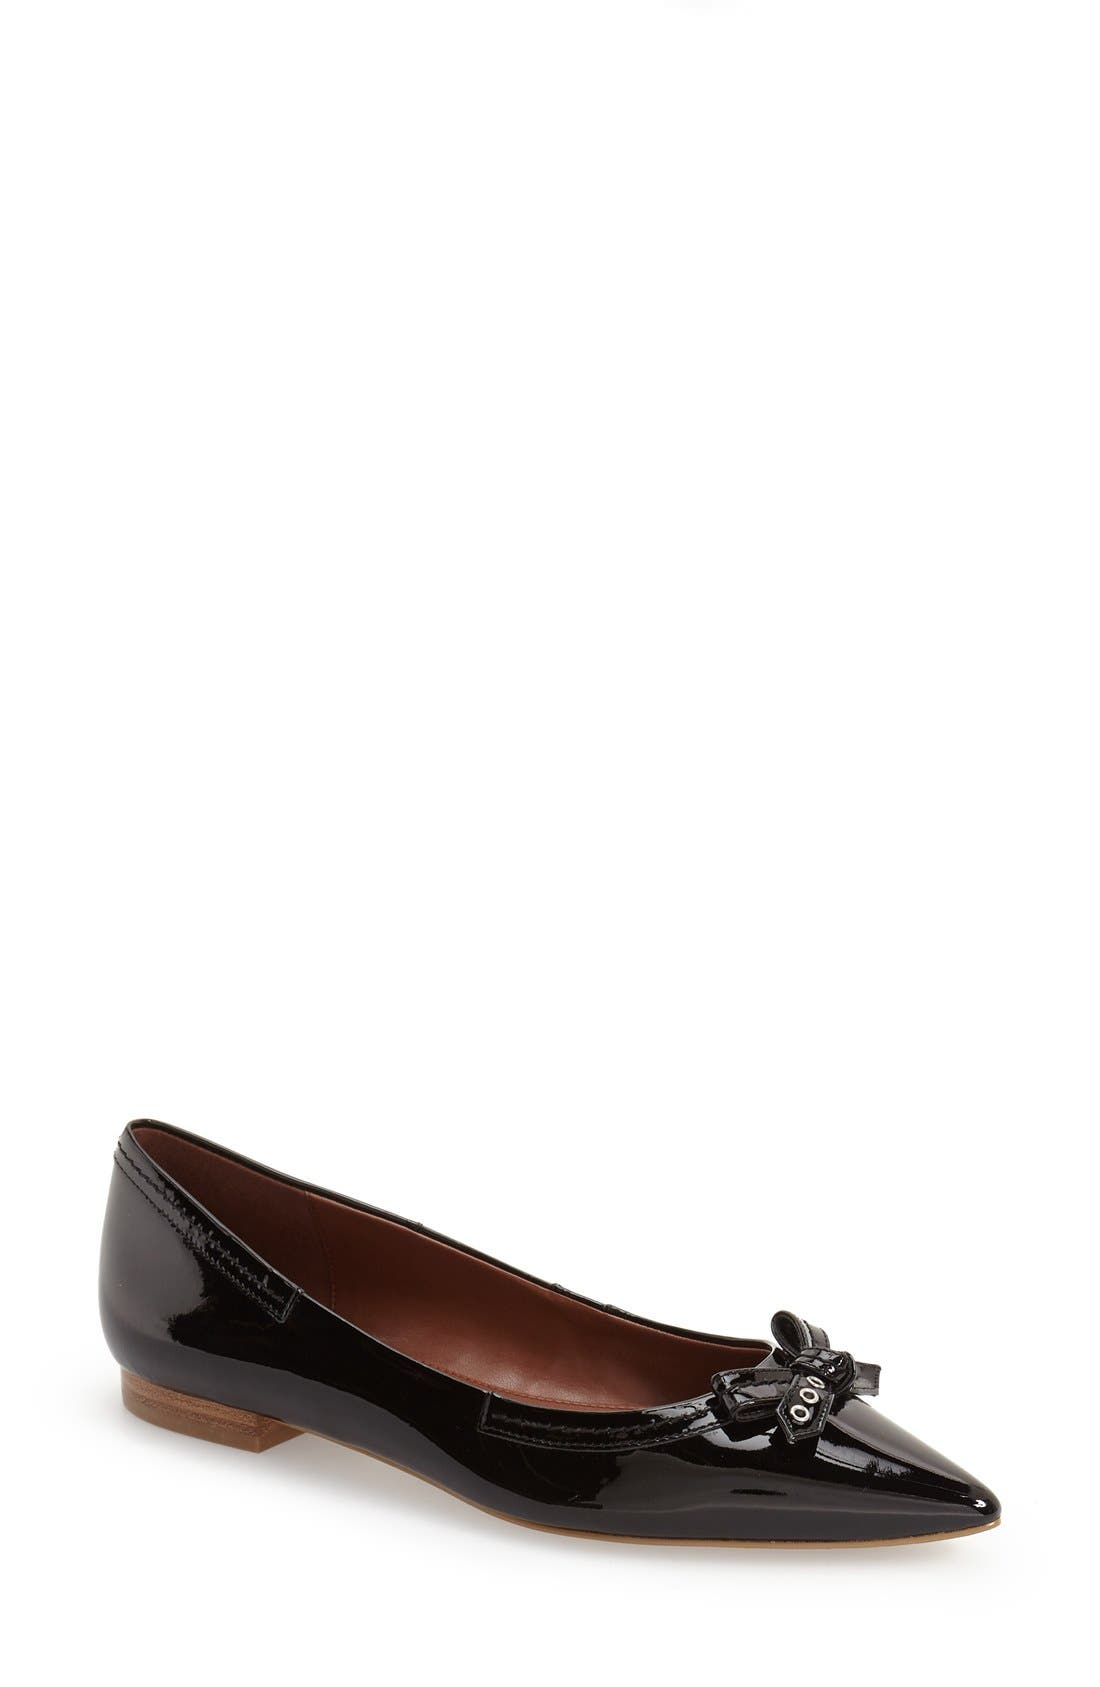 COLE HAAN 'Alice' Bow Skimmer Flat